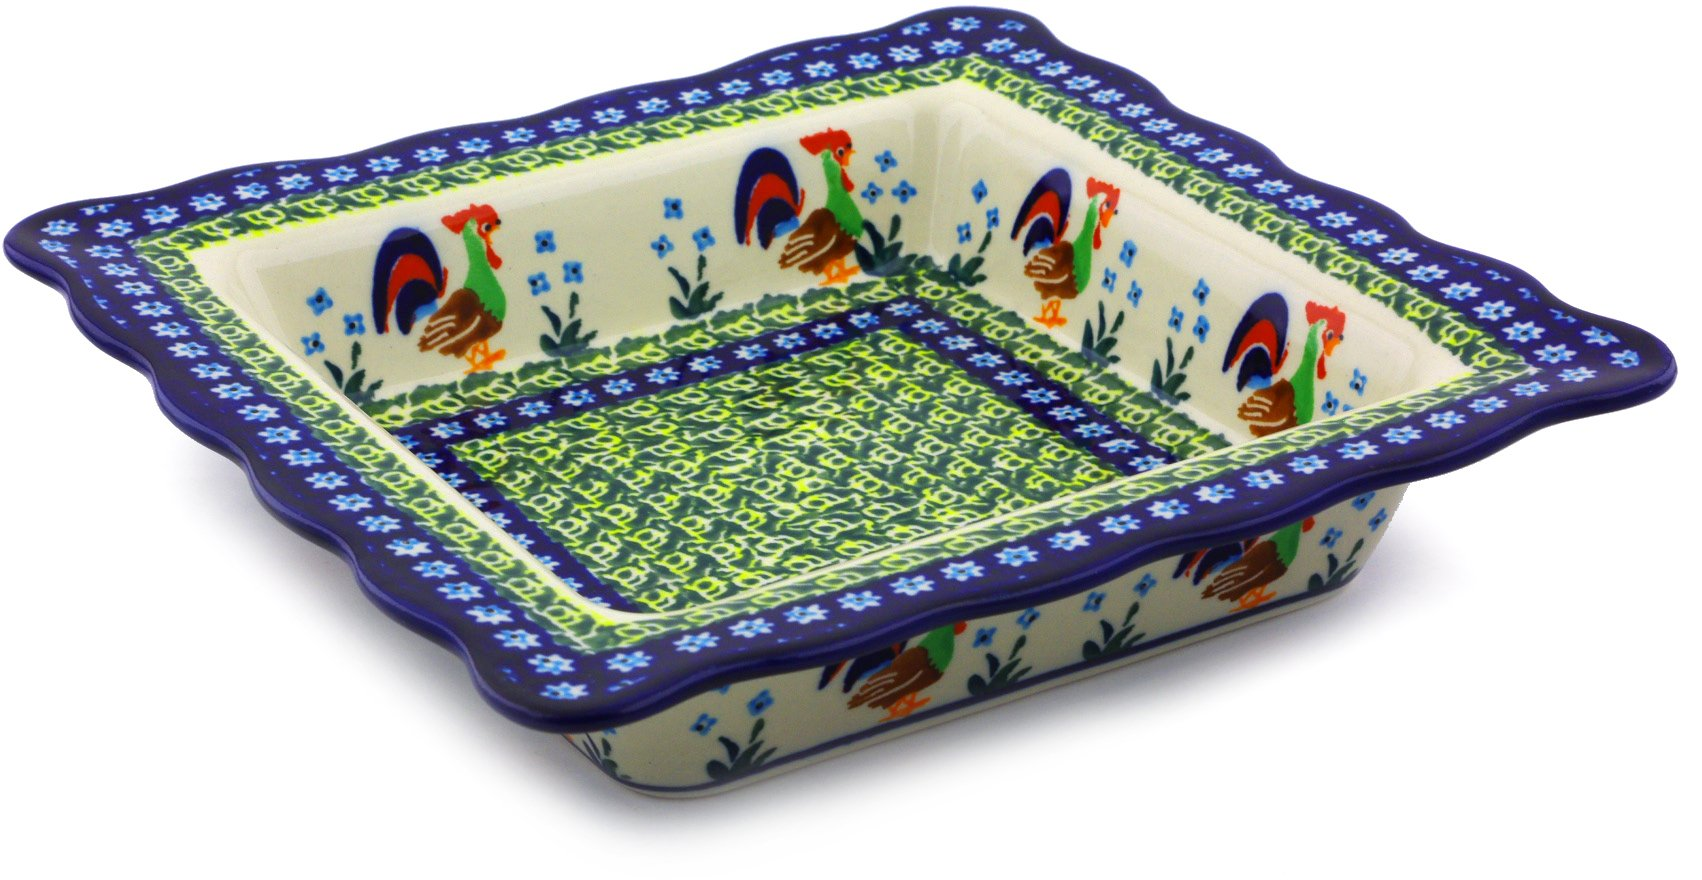 Polish Pottery Square Bowl 9-inch (Country Rooster Theme) Signature UNIKAT